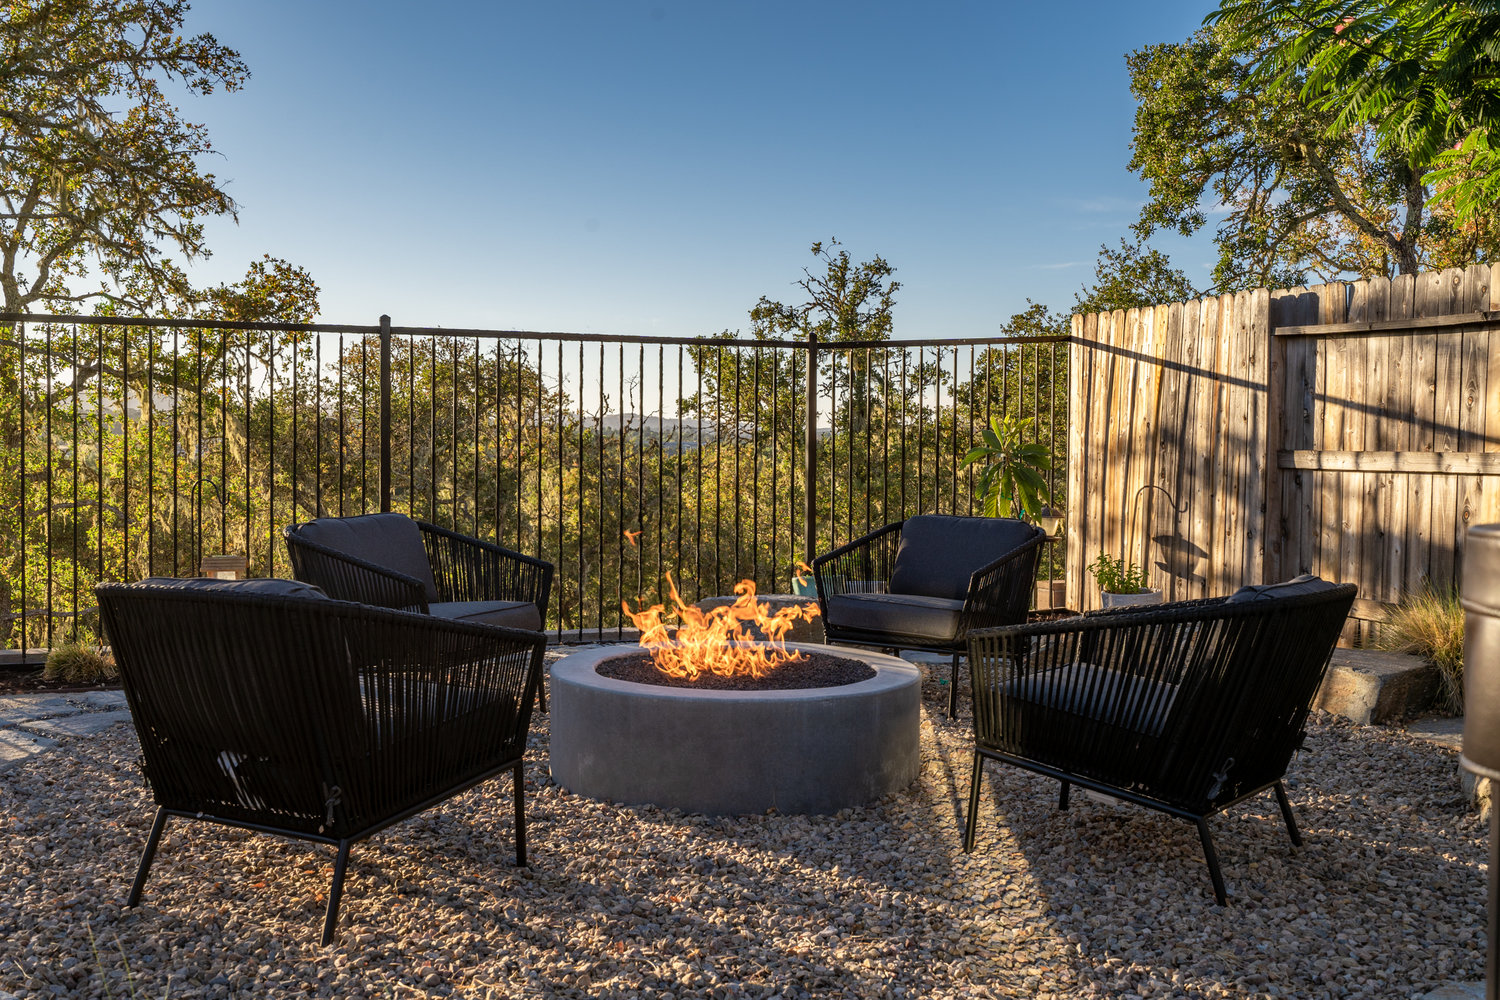 fire-pit-at-evening.jpg